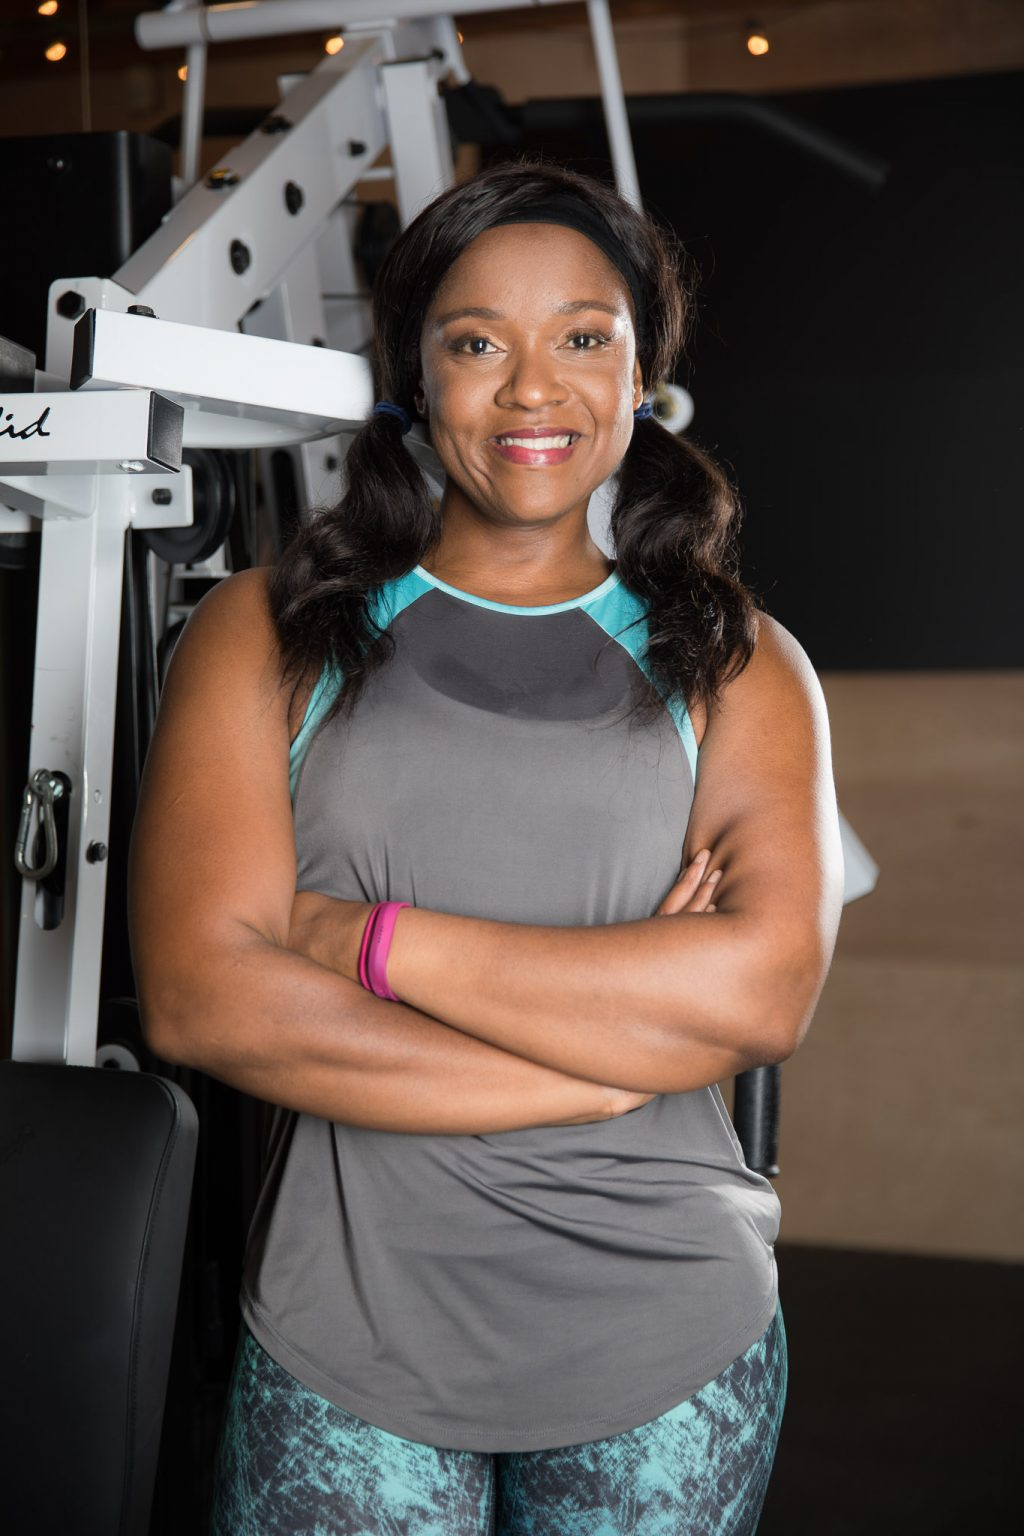 Personal Trainer Saint-charles, Missouri - Jazz Jones